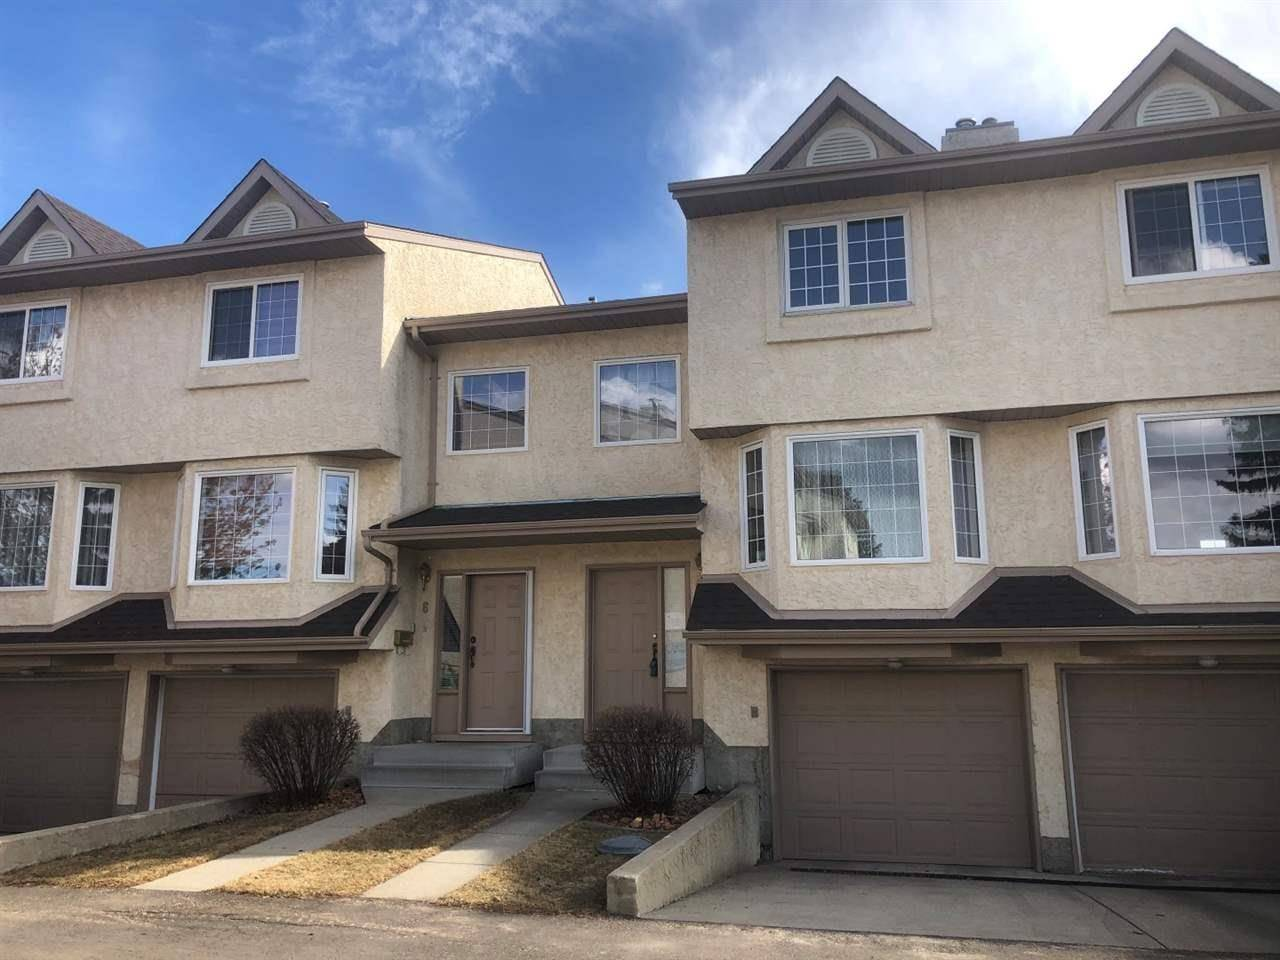 Townhouse for sale at 3645 145 Ave Nw Unit 7 Edmonton Alberta - MLS: E4180918